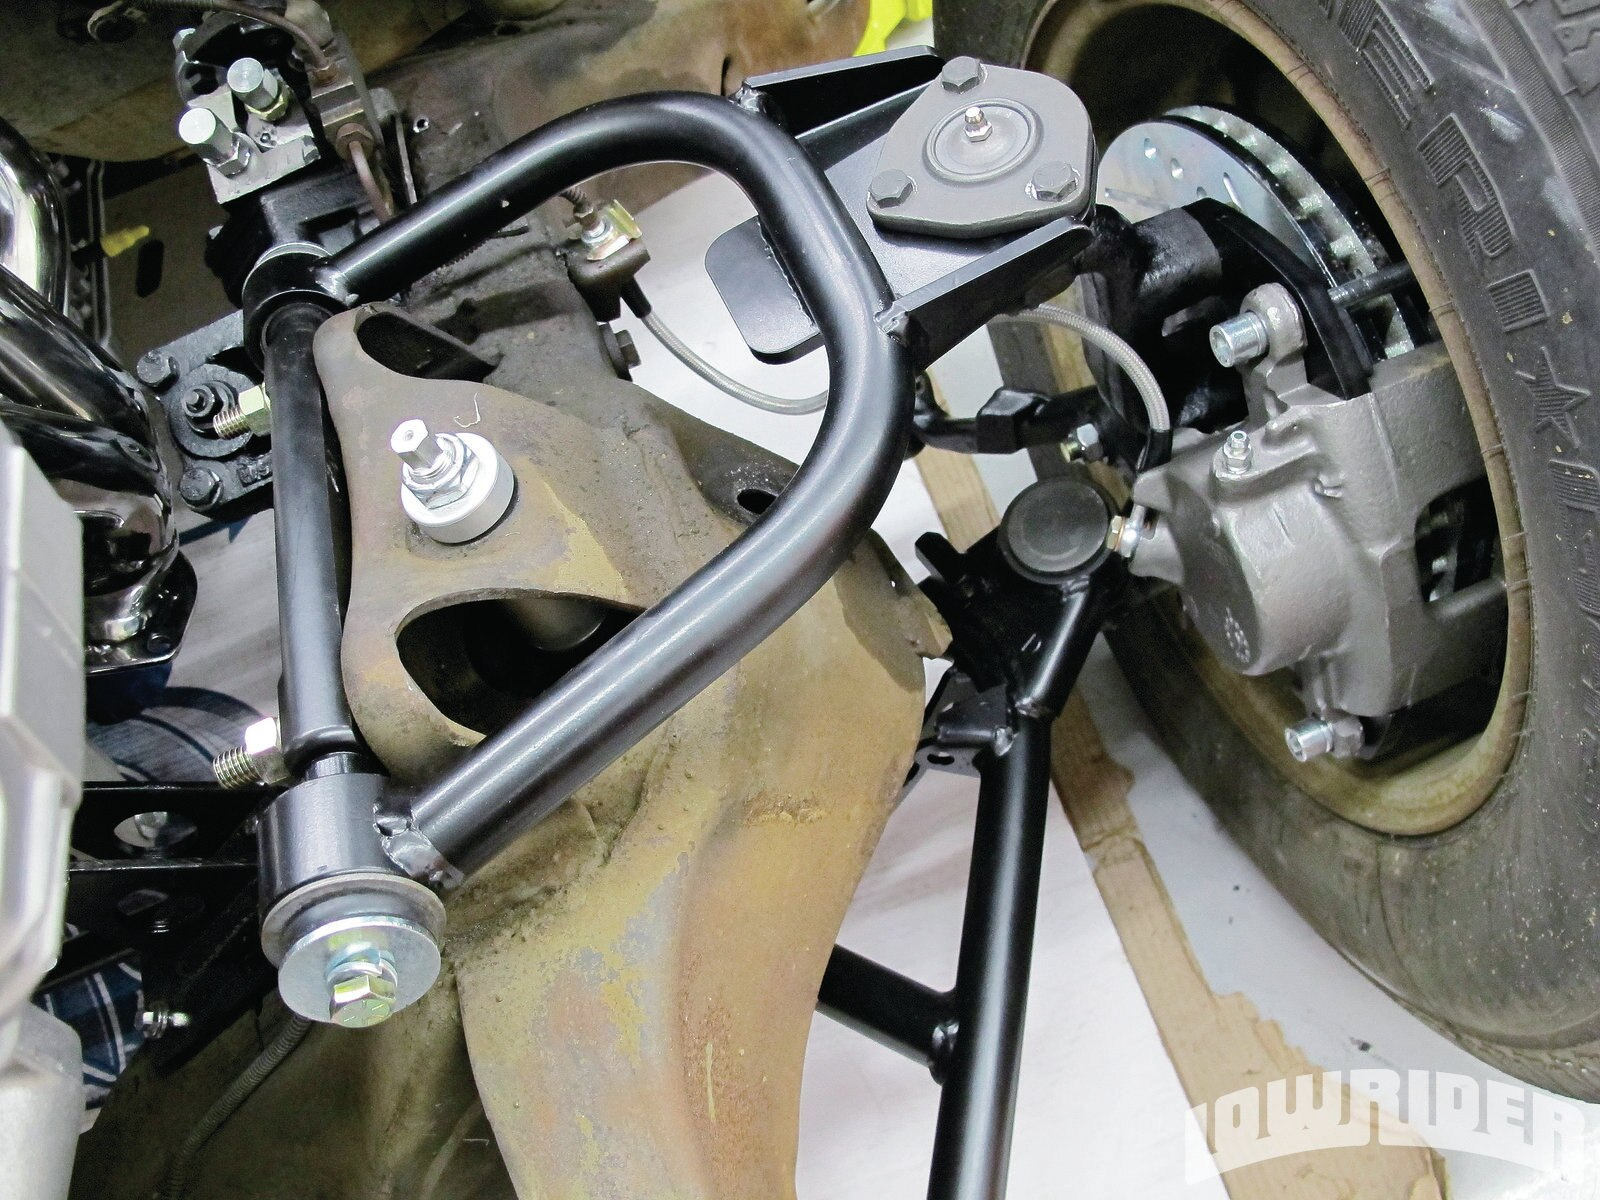 1204-lrmp-35-o-RideTech-tubular-control-arms-CPP-brake-kit-install-front-suspension1